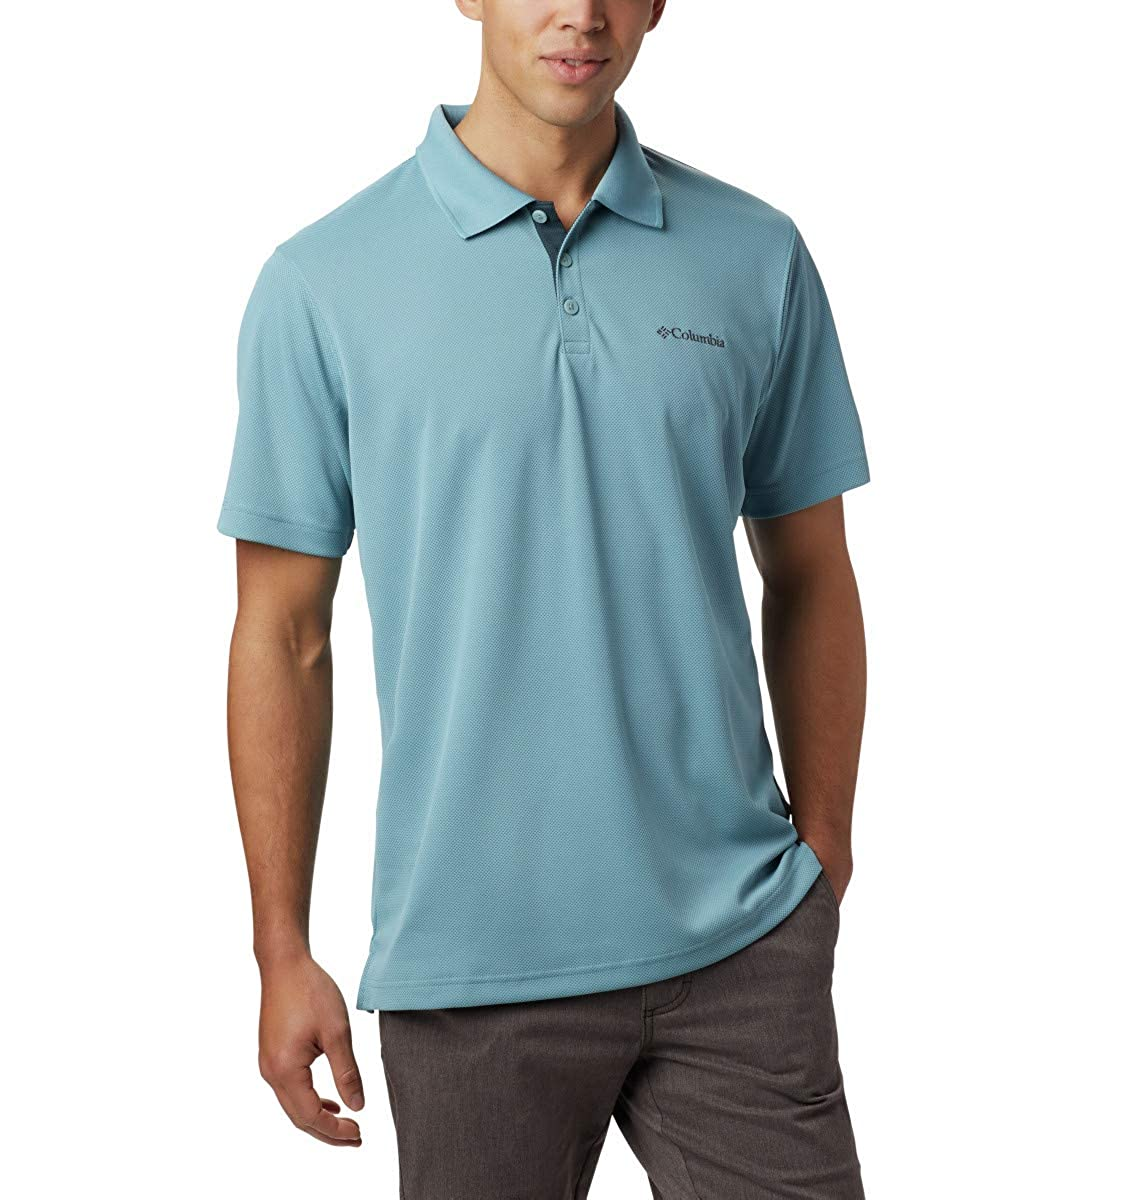 Columbia Mens Utilizer Polo Shirt